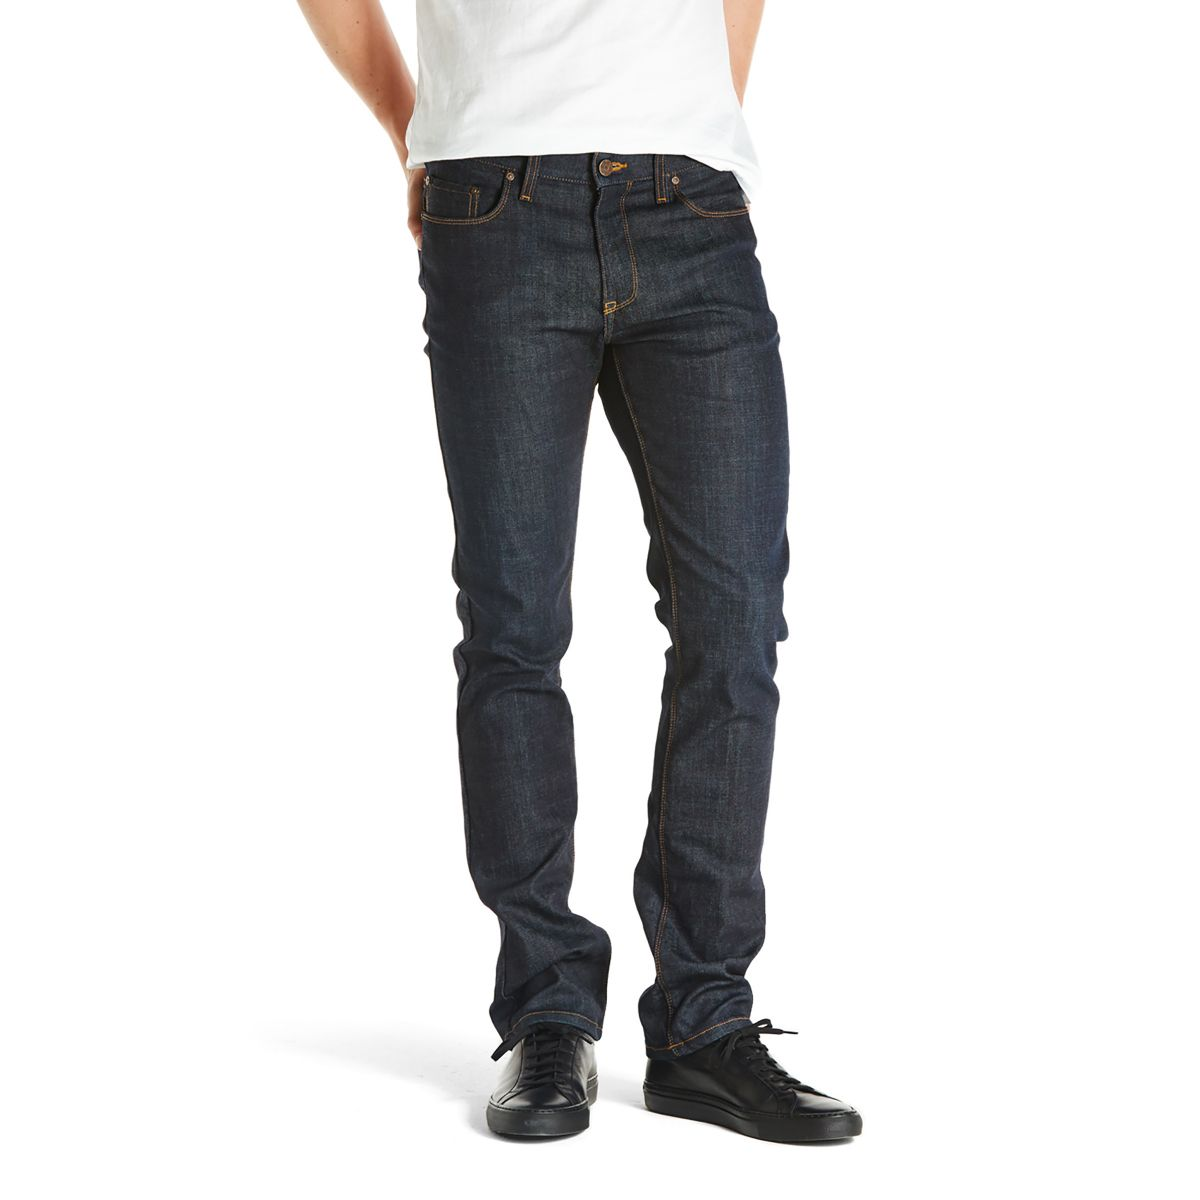 Mott and Bow Slim Crosby Jeans